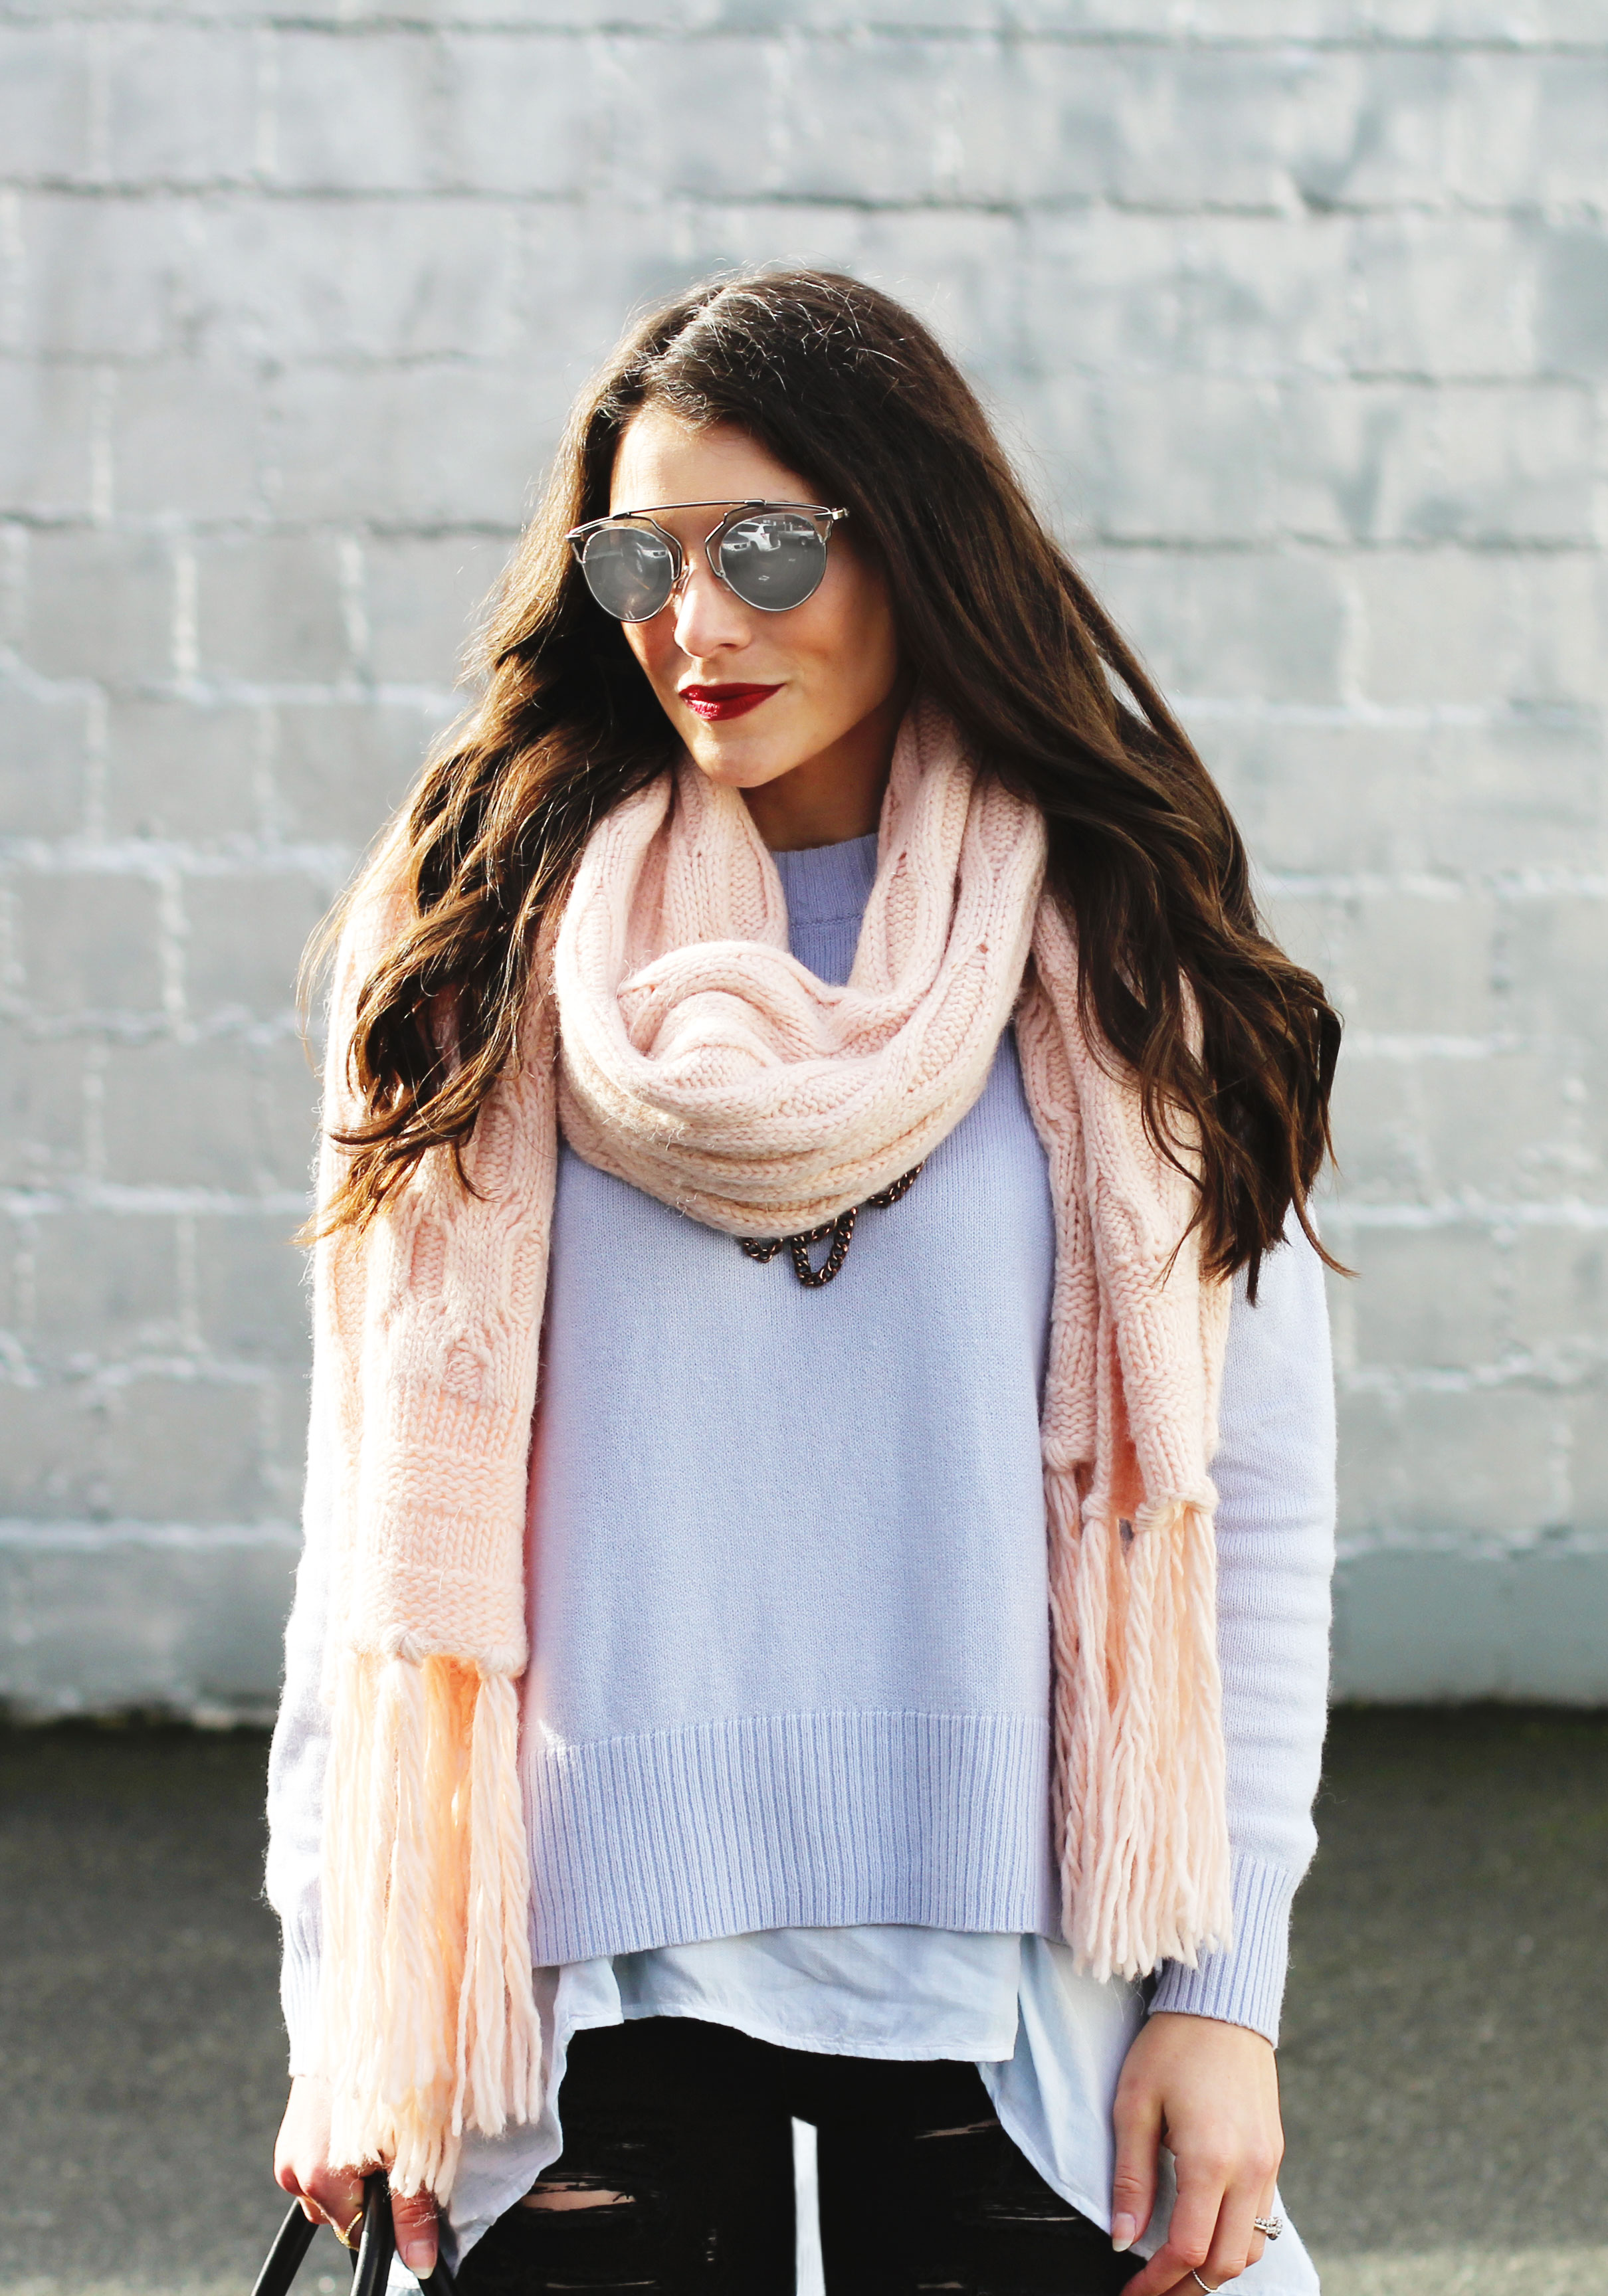 Winter Outfit, Pantone Colors 2016, Banana Republic Rose Quartz Scarf, Serenity Blue Sweater, Black Ripped Skinny Jeans, Rebecca Minkoff Mini Perry Satchel, Seyhelles Accordian Booties